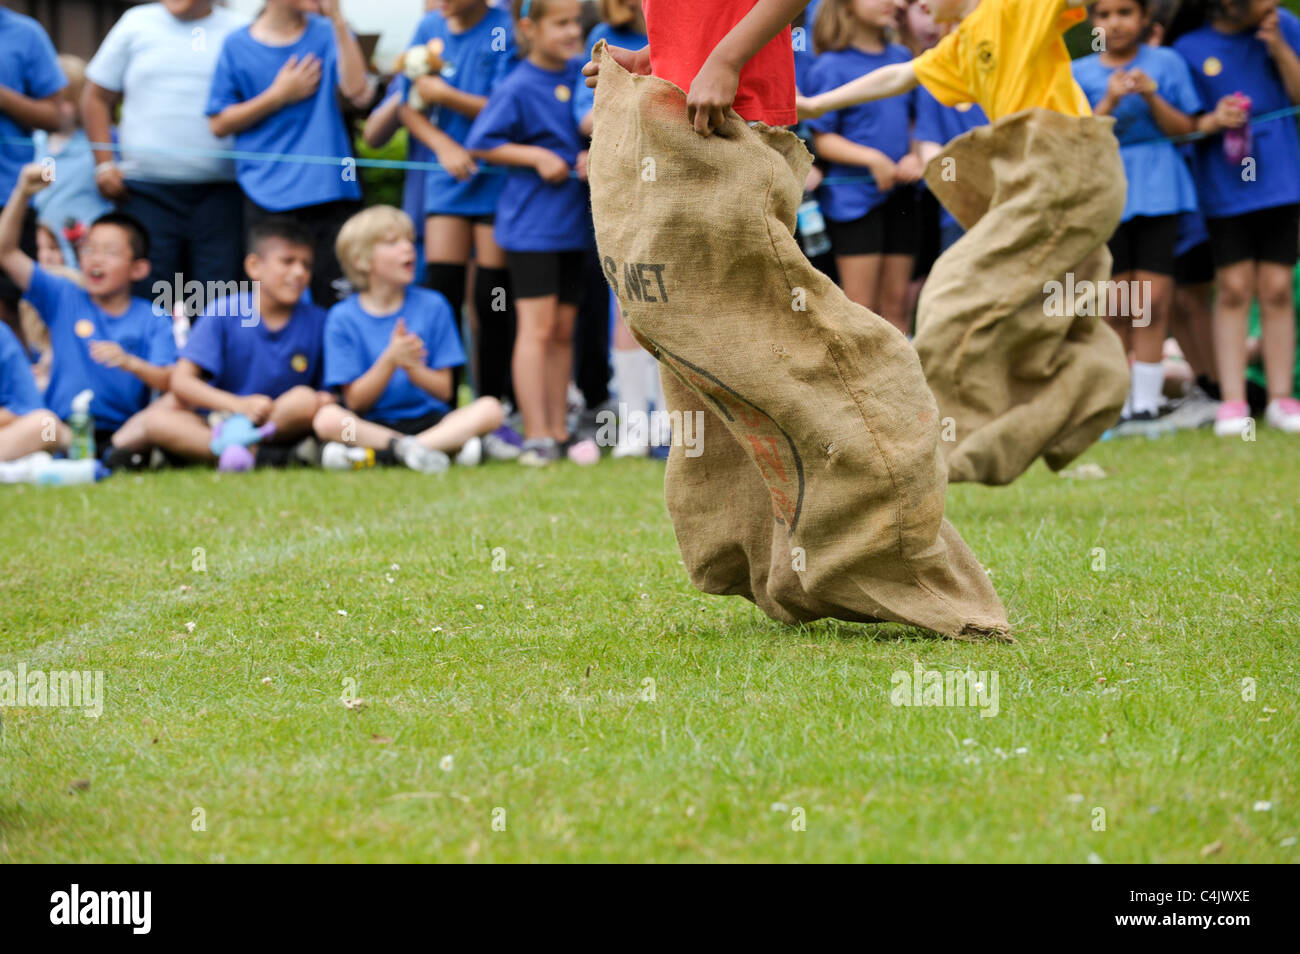 two school children in a traditional sack race at school sports day with pupils cheering them on as they cross the - Stock Image